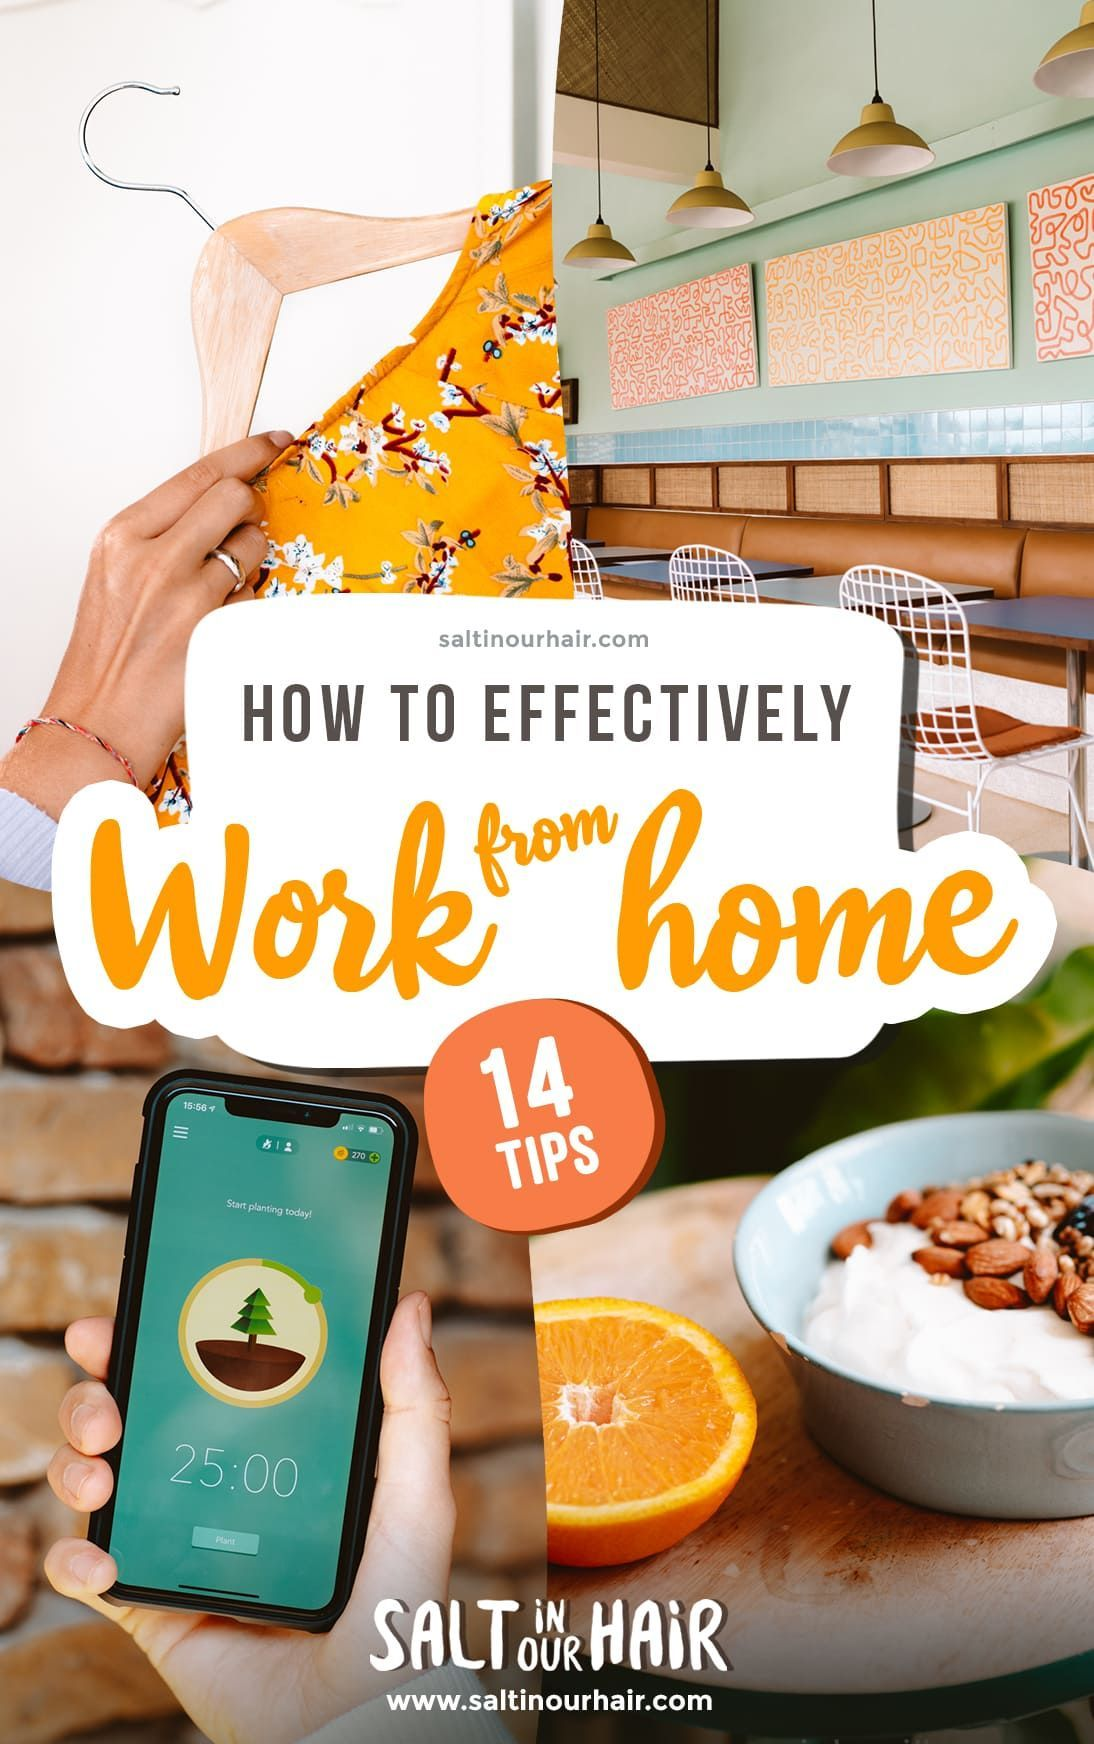 How To Work From Home Effectively 14 Tips For Freelancers In 2020 Working From Home Work From Home Business Work From Home Tips